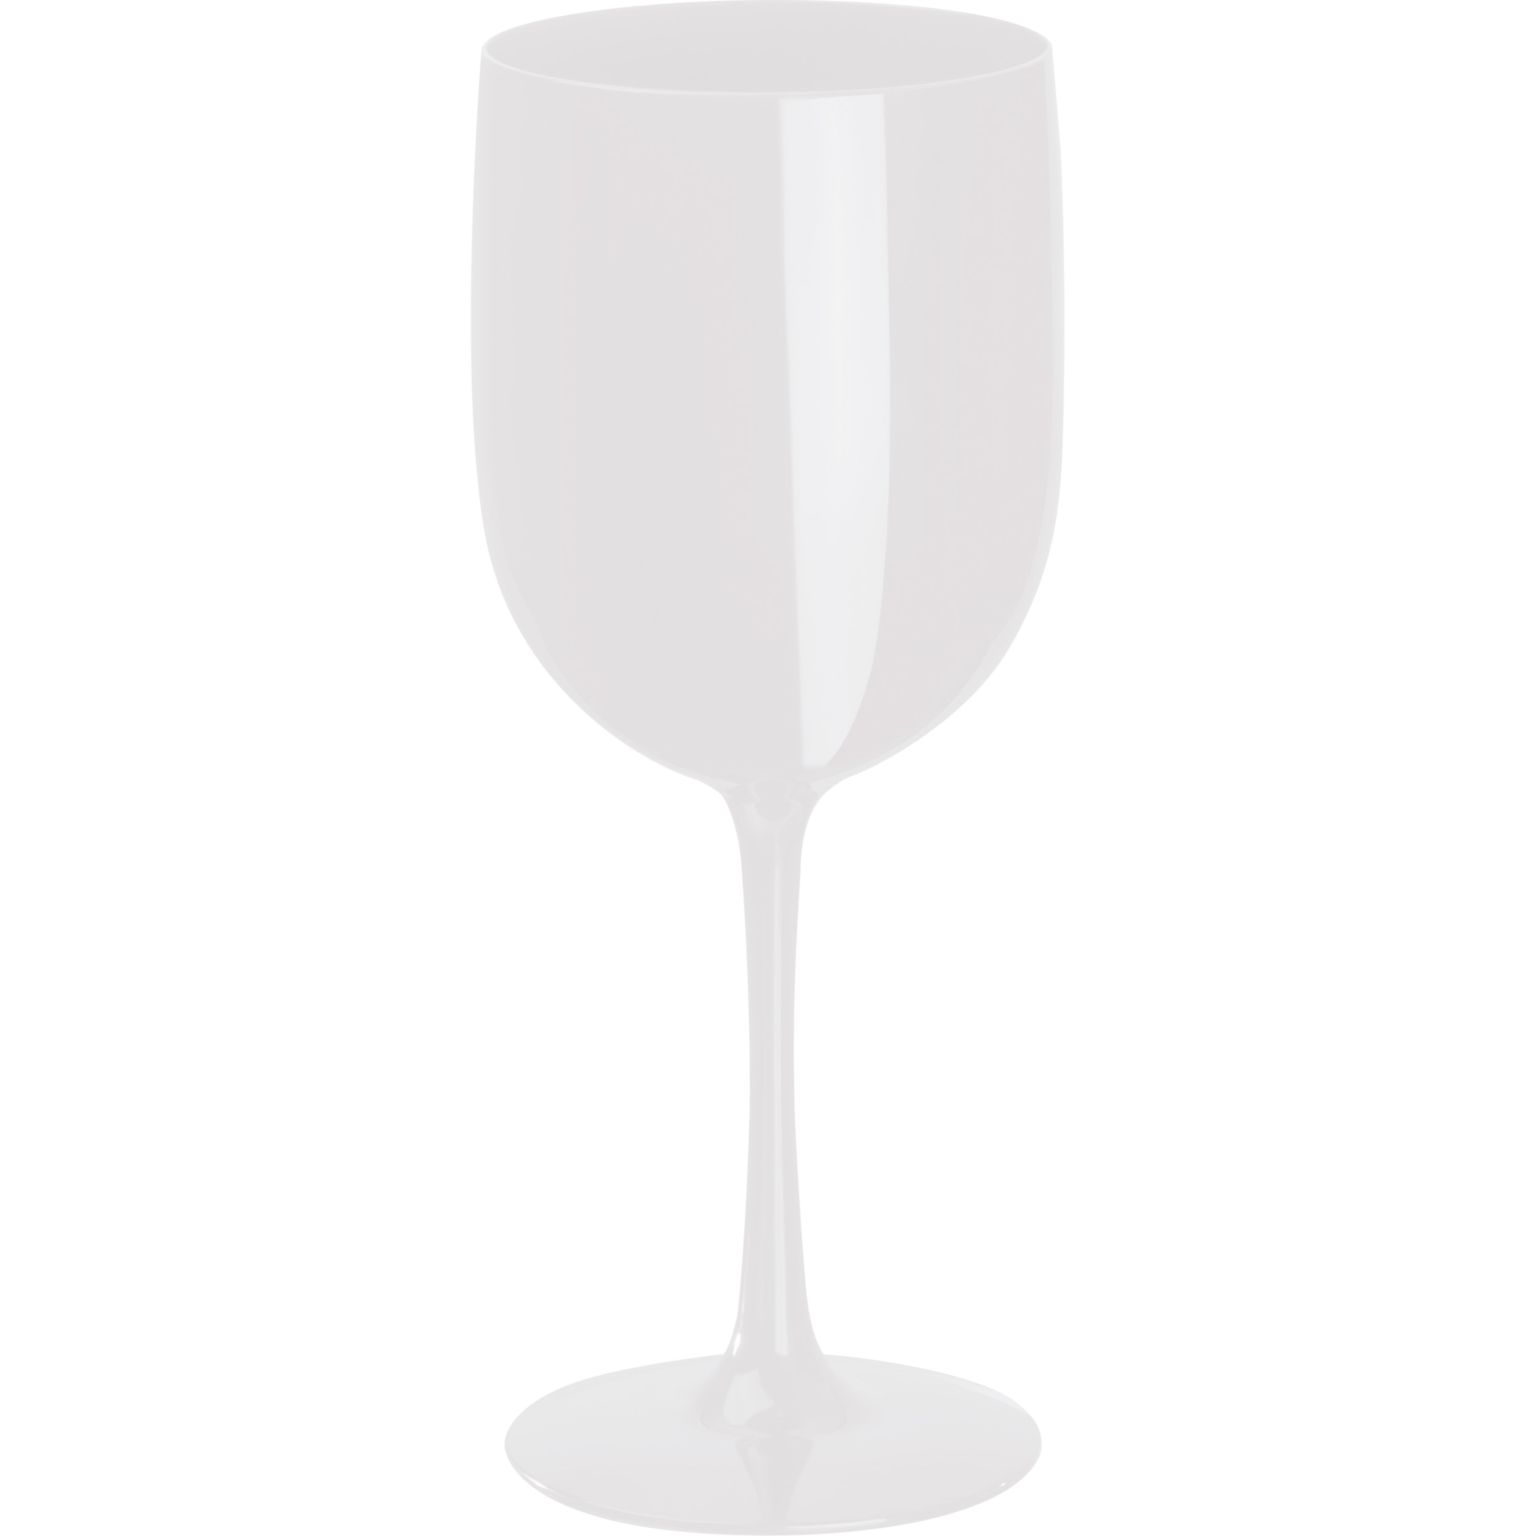 PS Drinking glass 460 ml